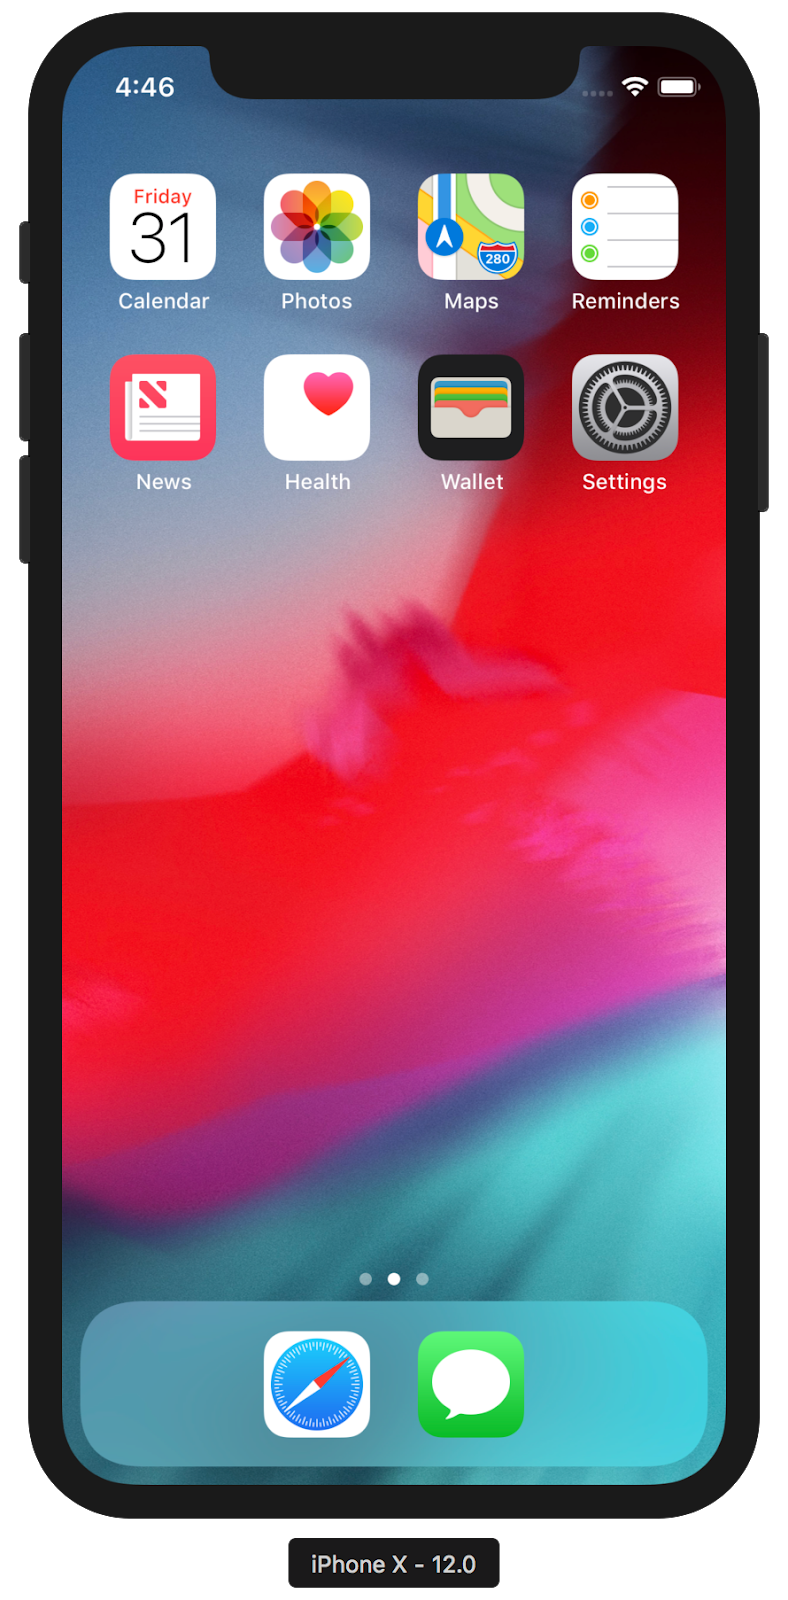 The iPhone X home screen in Simulator with